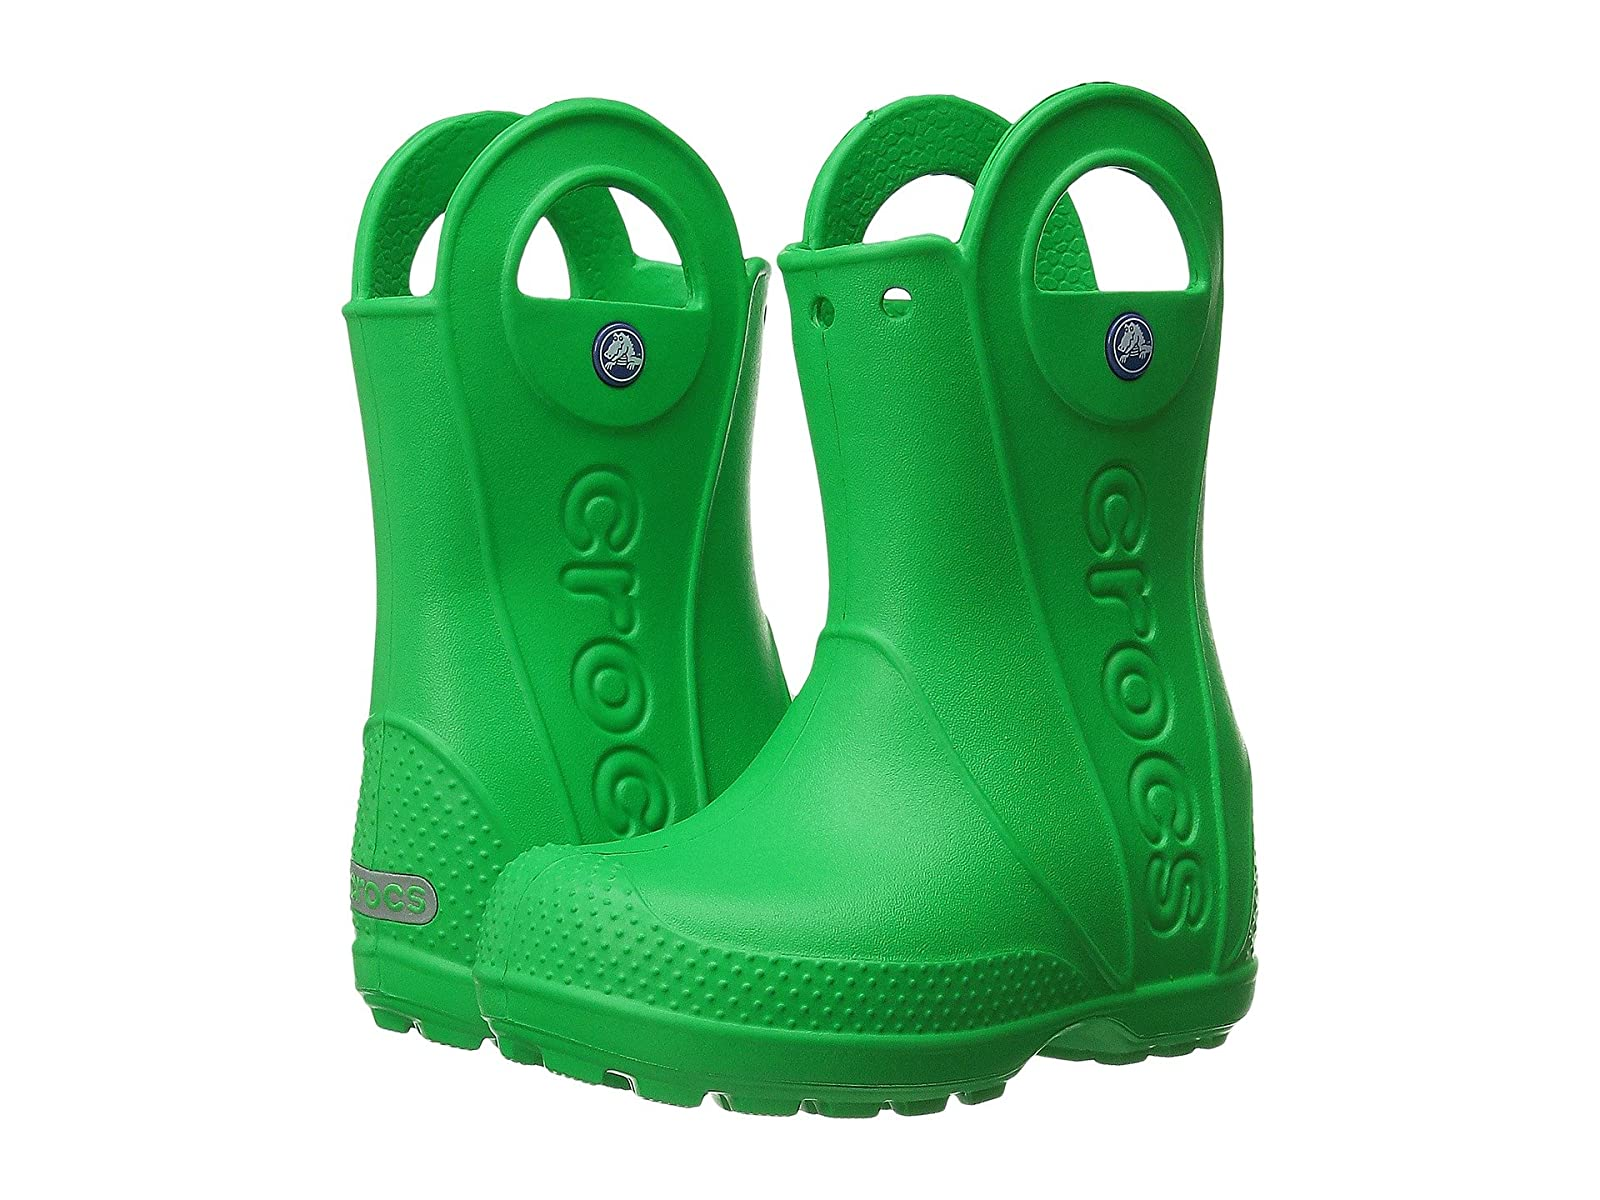 Crocs Kids Handle It Rain Boot (Toddler/Little Kid)Affordable and distinctive shoes